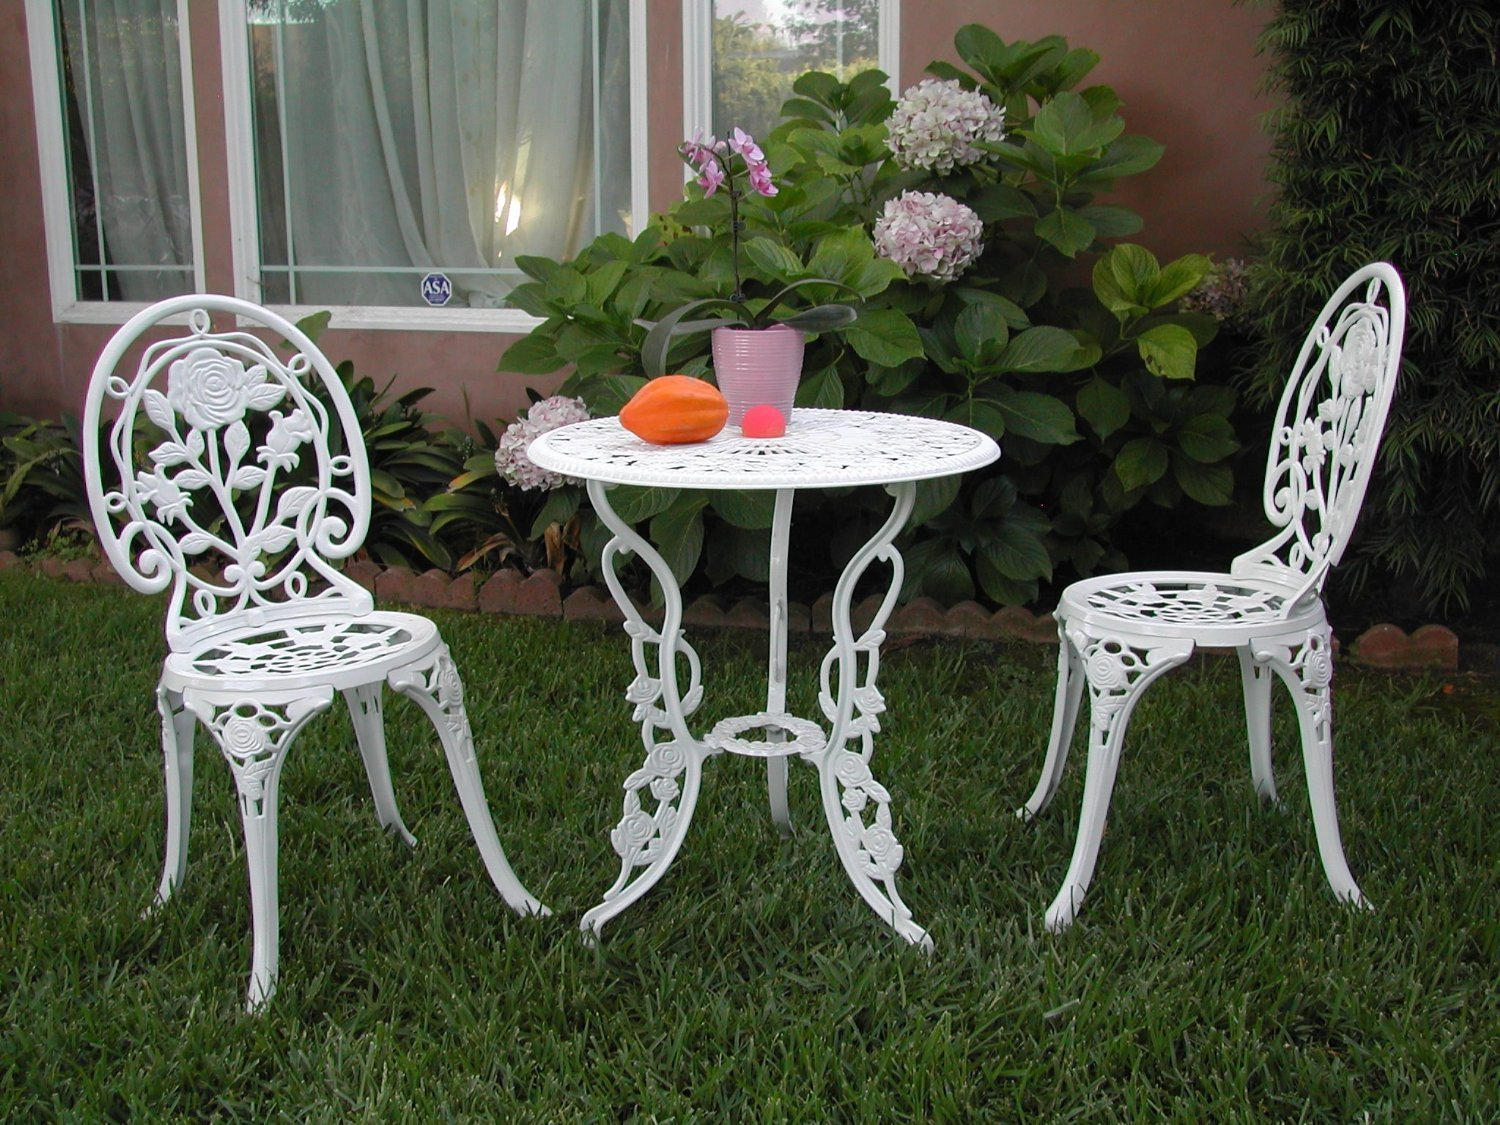 amazoncom outdoor patio furniture 3 piece cast aluminum bistro set f cbm1290 garden outdoor - Garden Furniture 3 Piece